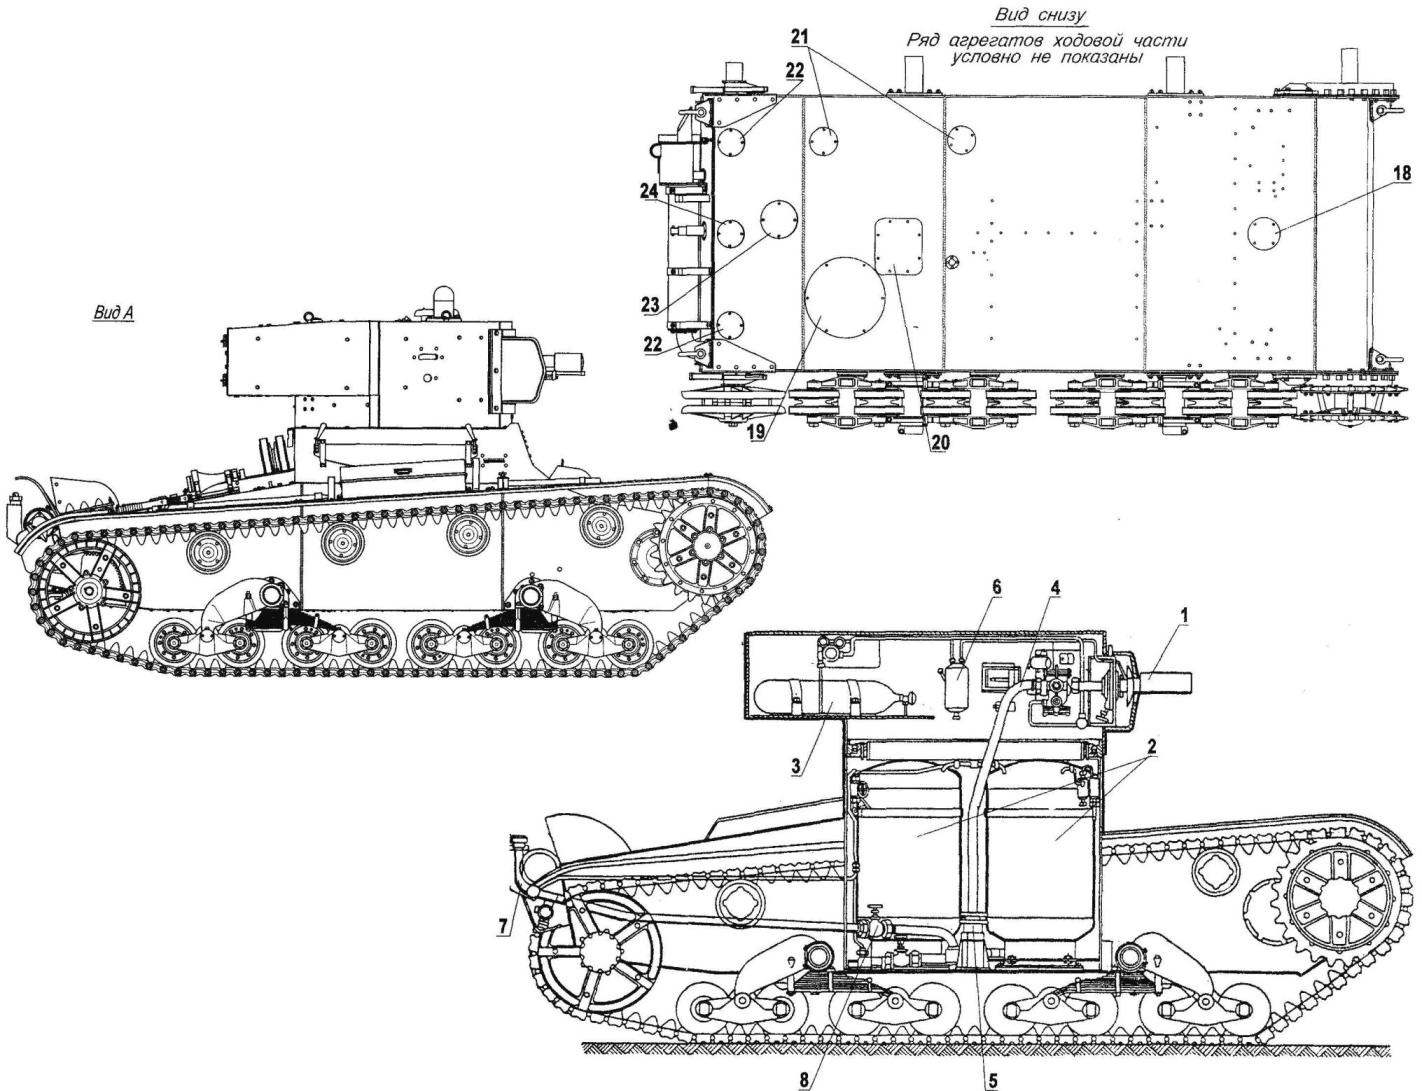 The layout of the tank KHT-130